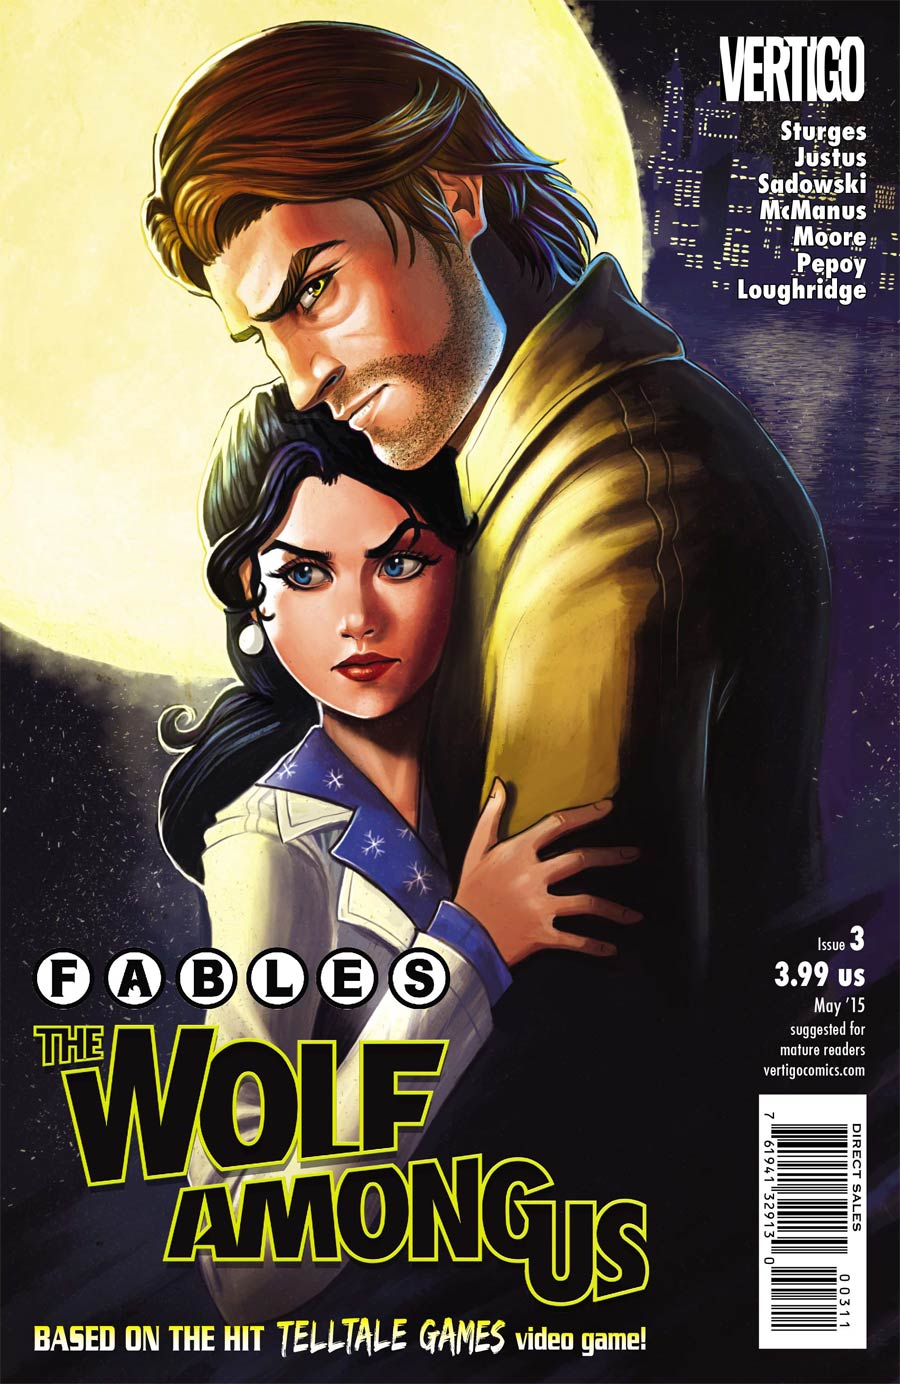 Fables The Wolf Among Us #3